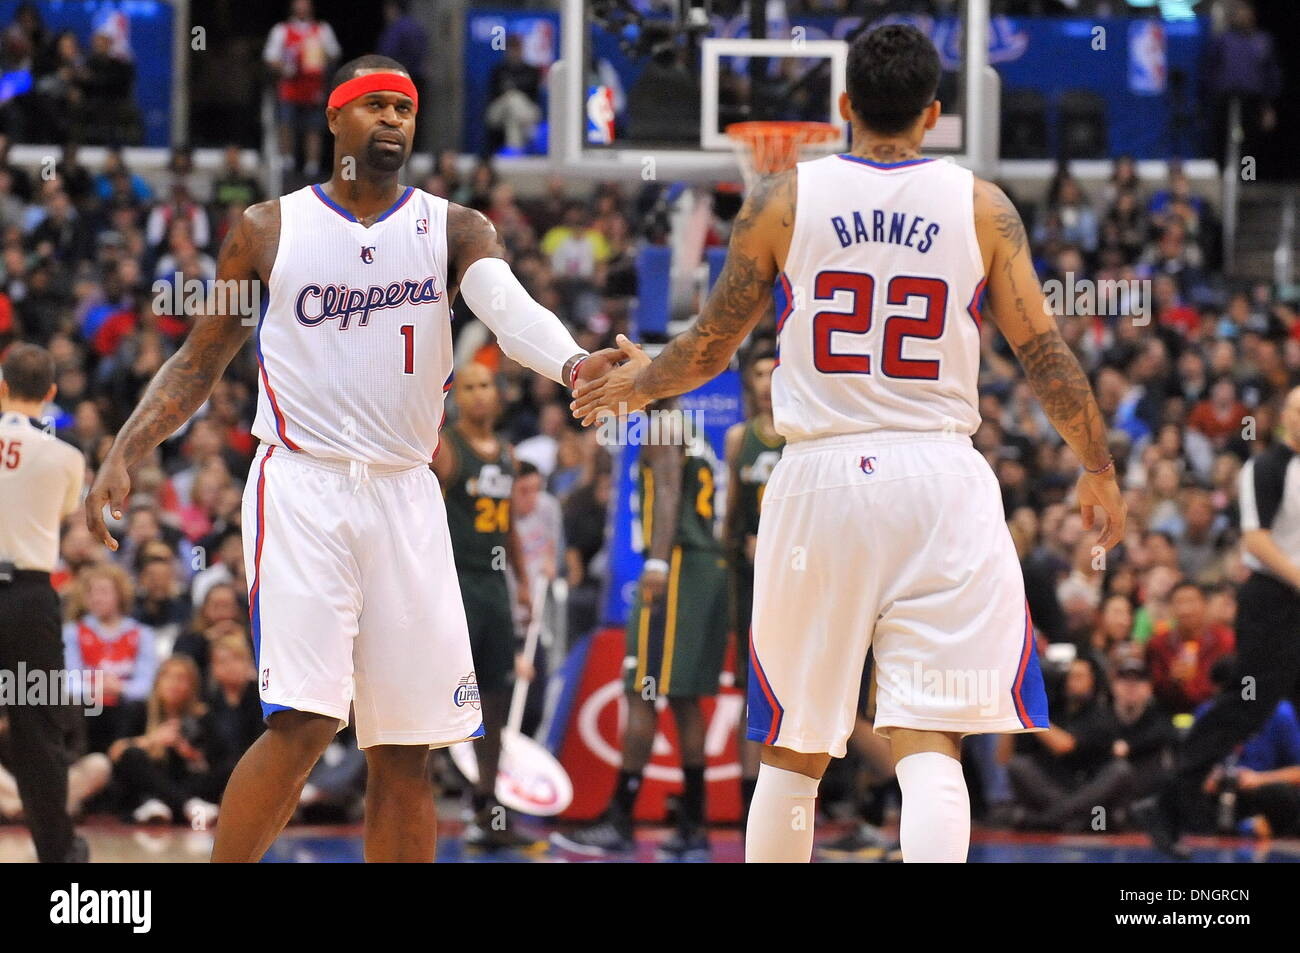 Los Angeles CA USA 28th Dec 2013 Clippers Stephen Jackson 1